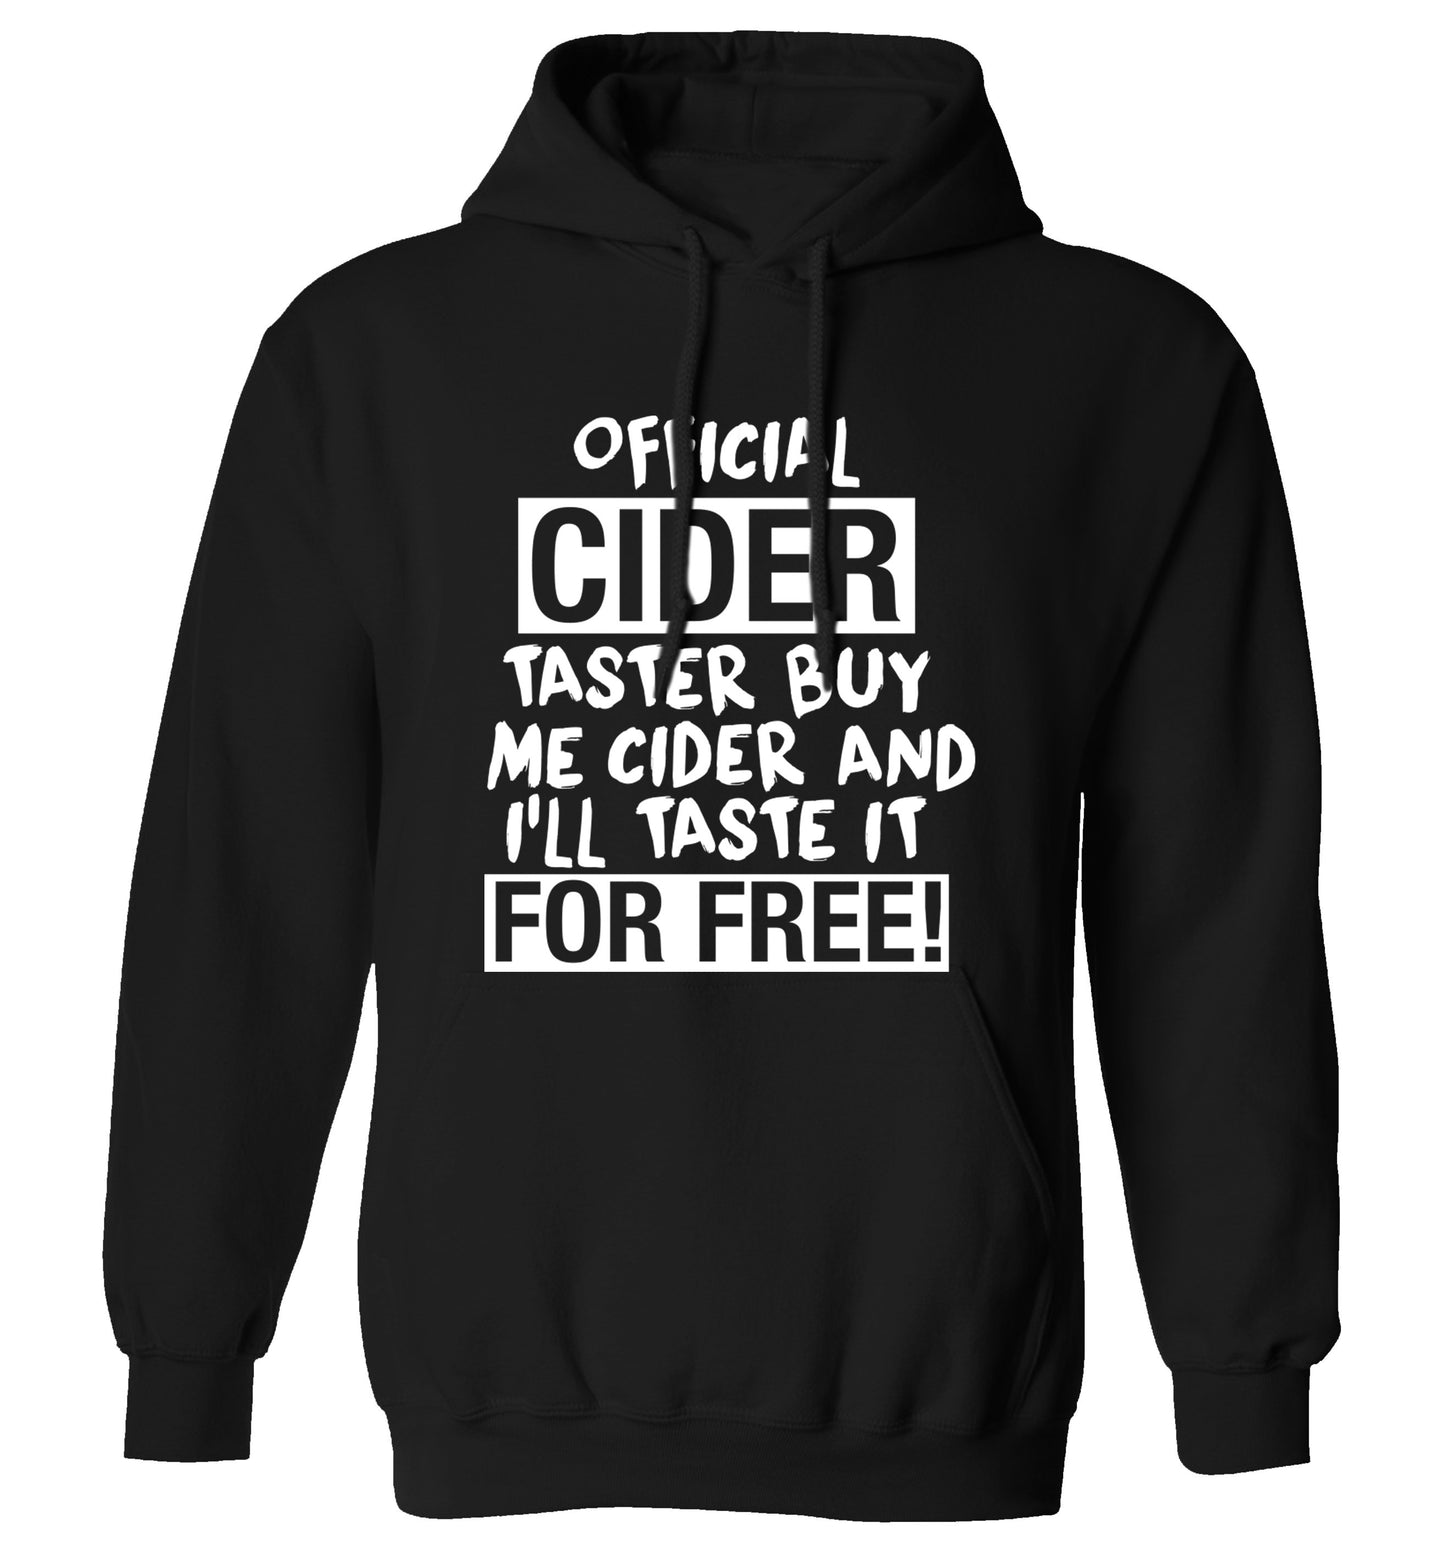 Official cider taster buy me cider and I'll taste it for free! adults unisex black hoodie 2XL